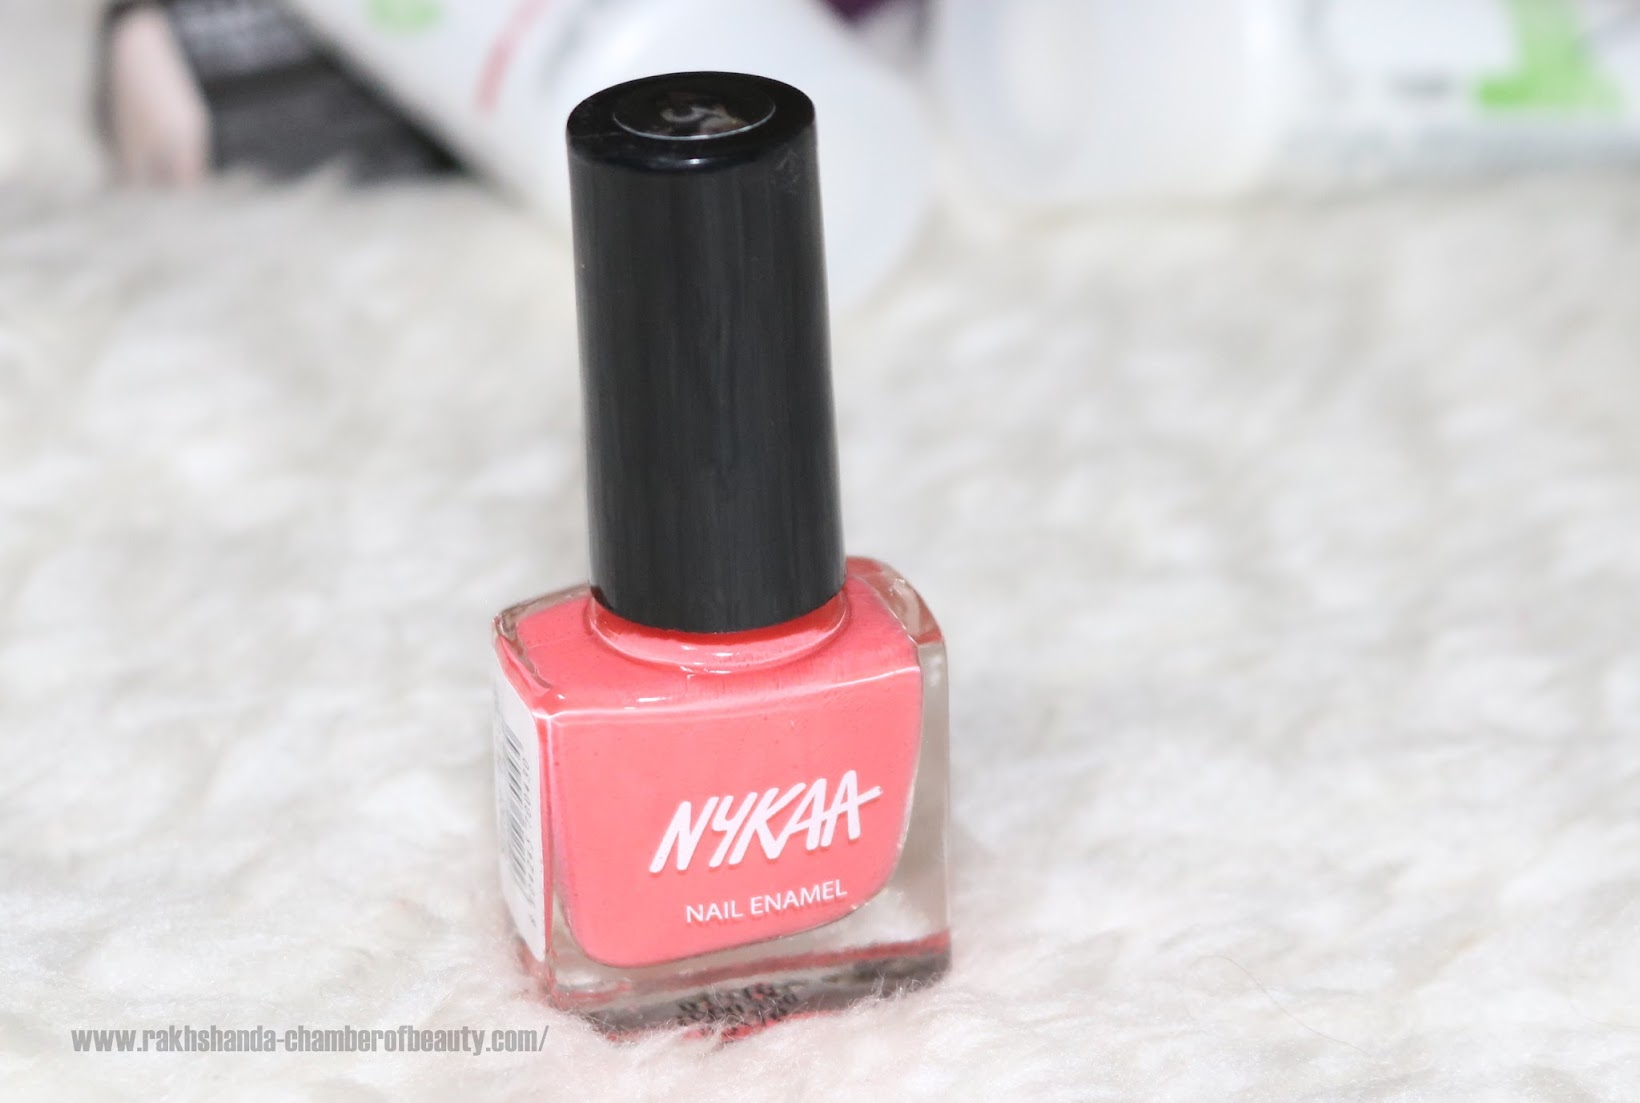 My March 2016 Fab Bag Unboxing, Nykaa Nail Enamel